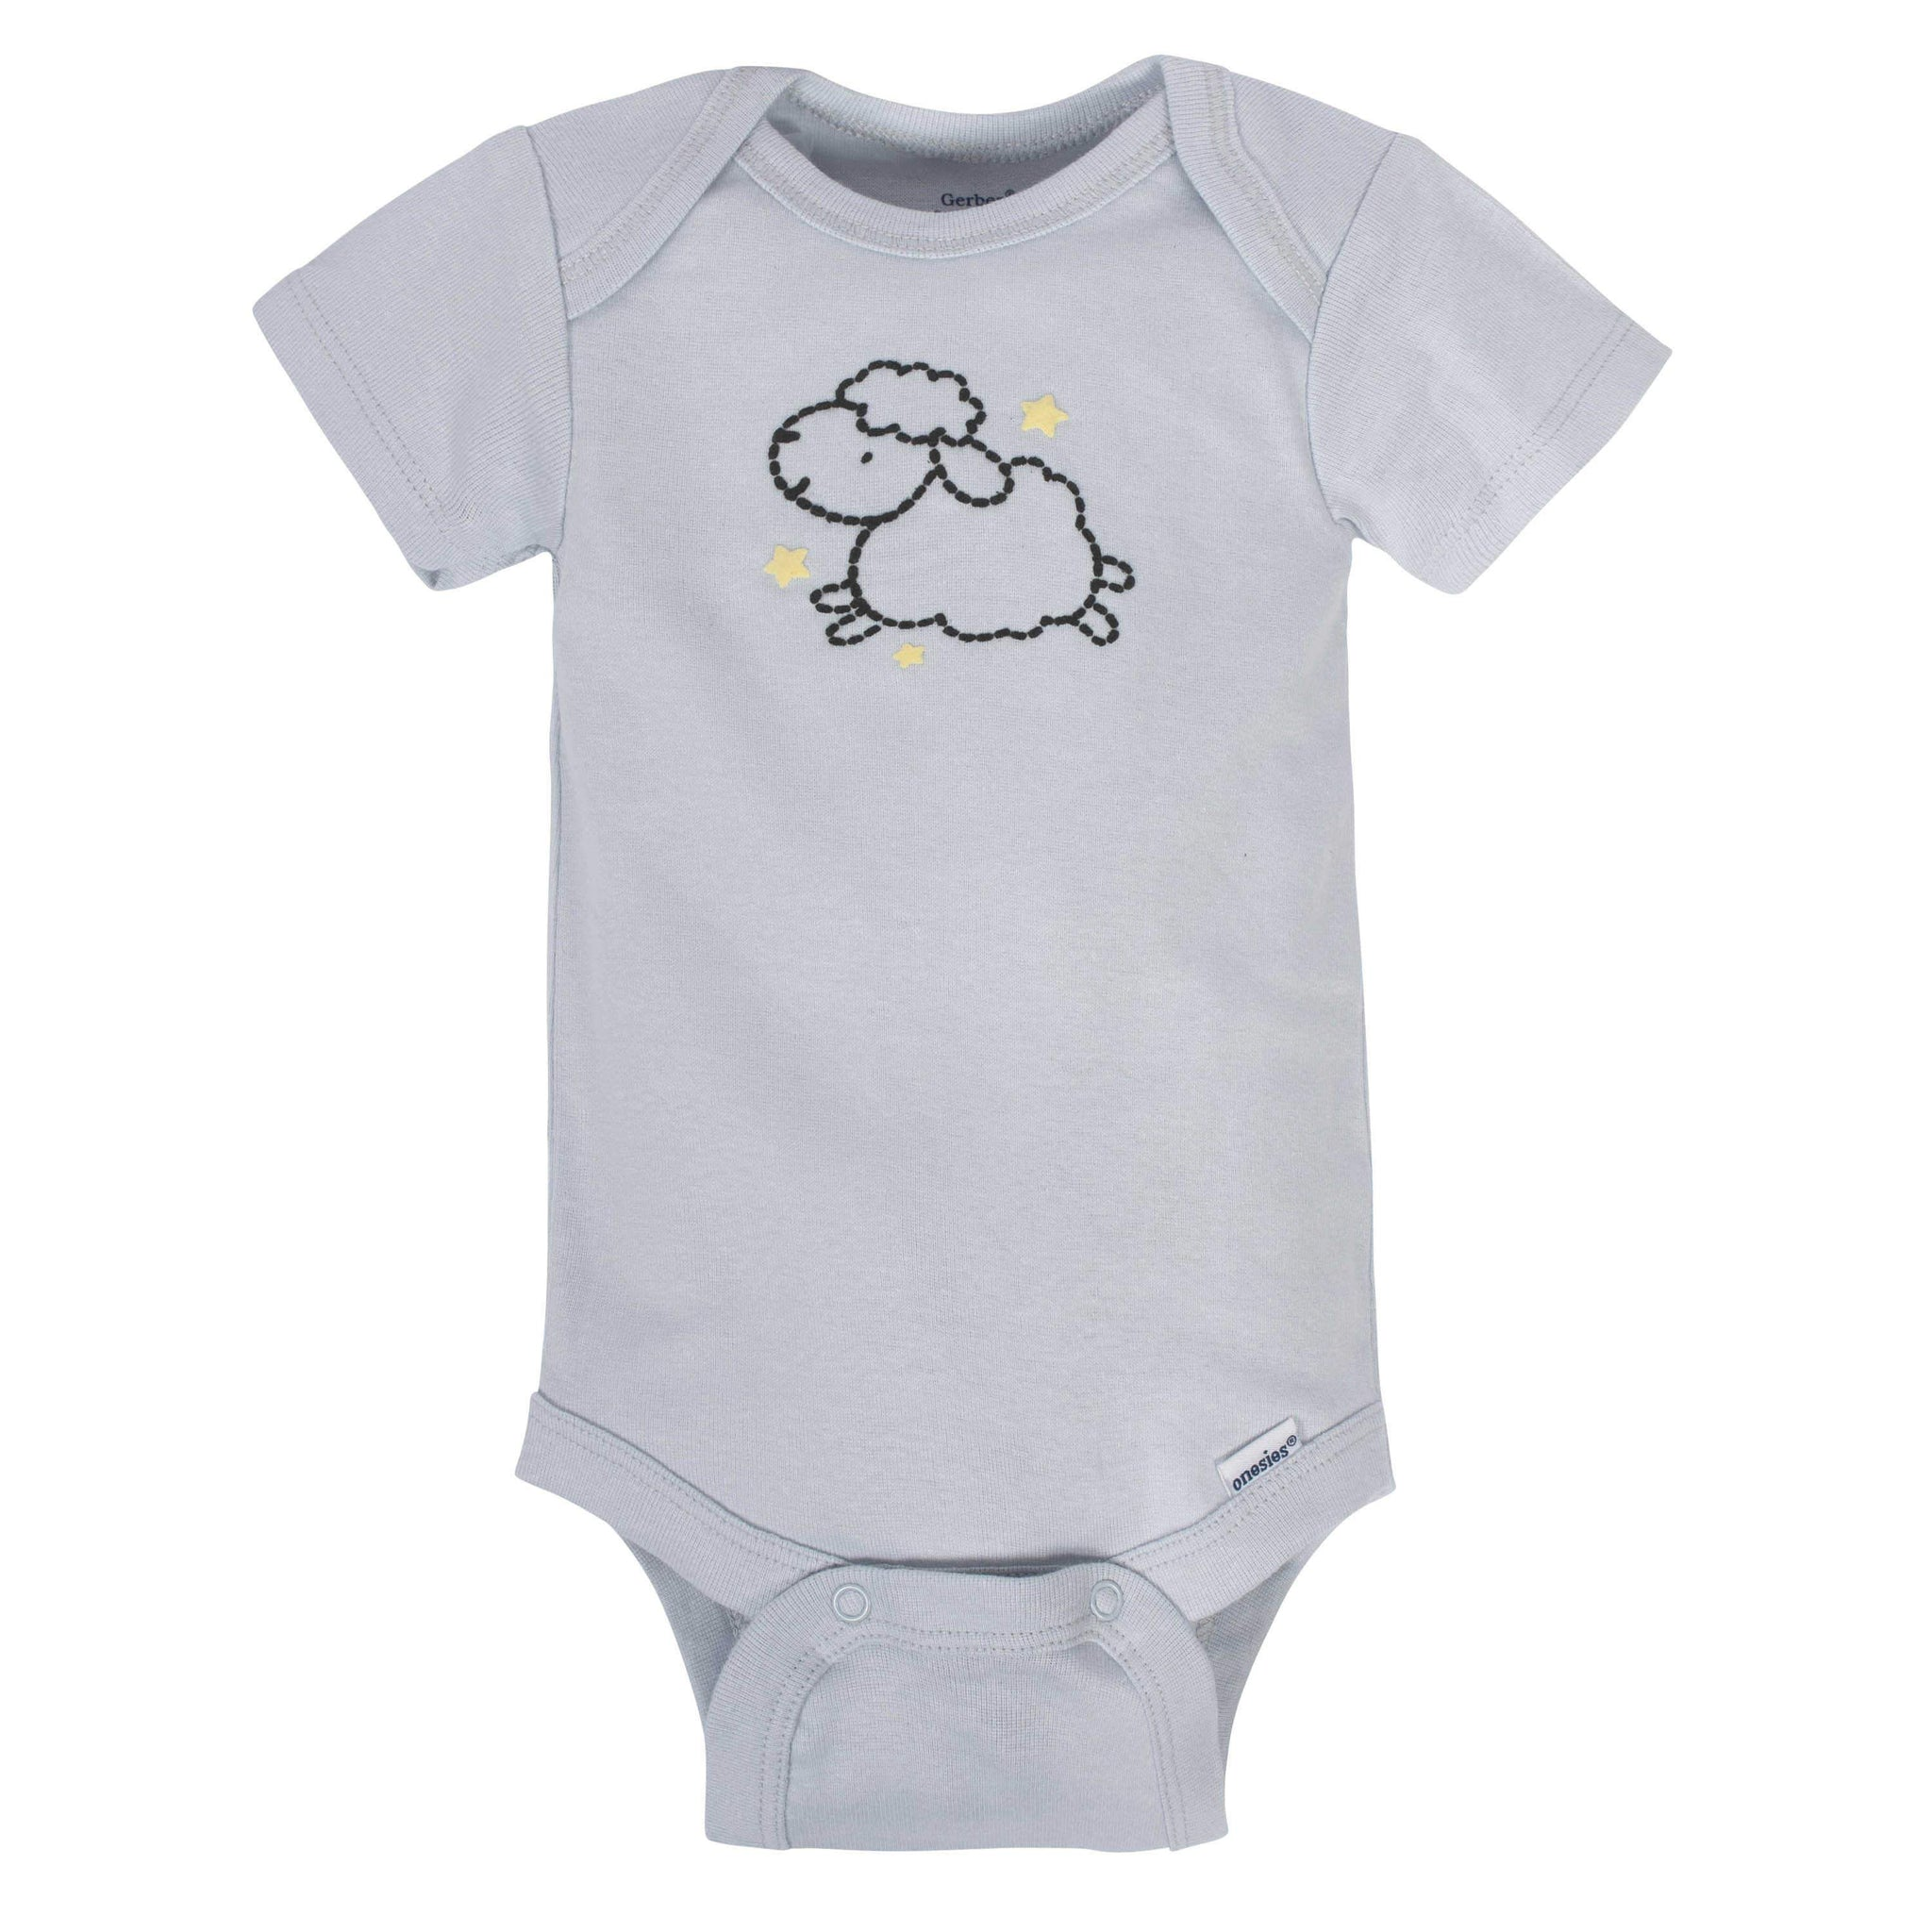 Gerber® 8-pack Baby Neutral Sheep Short Sleeve Onesies®